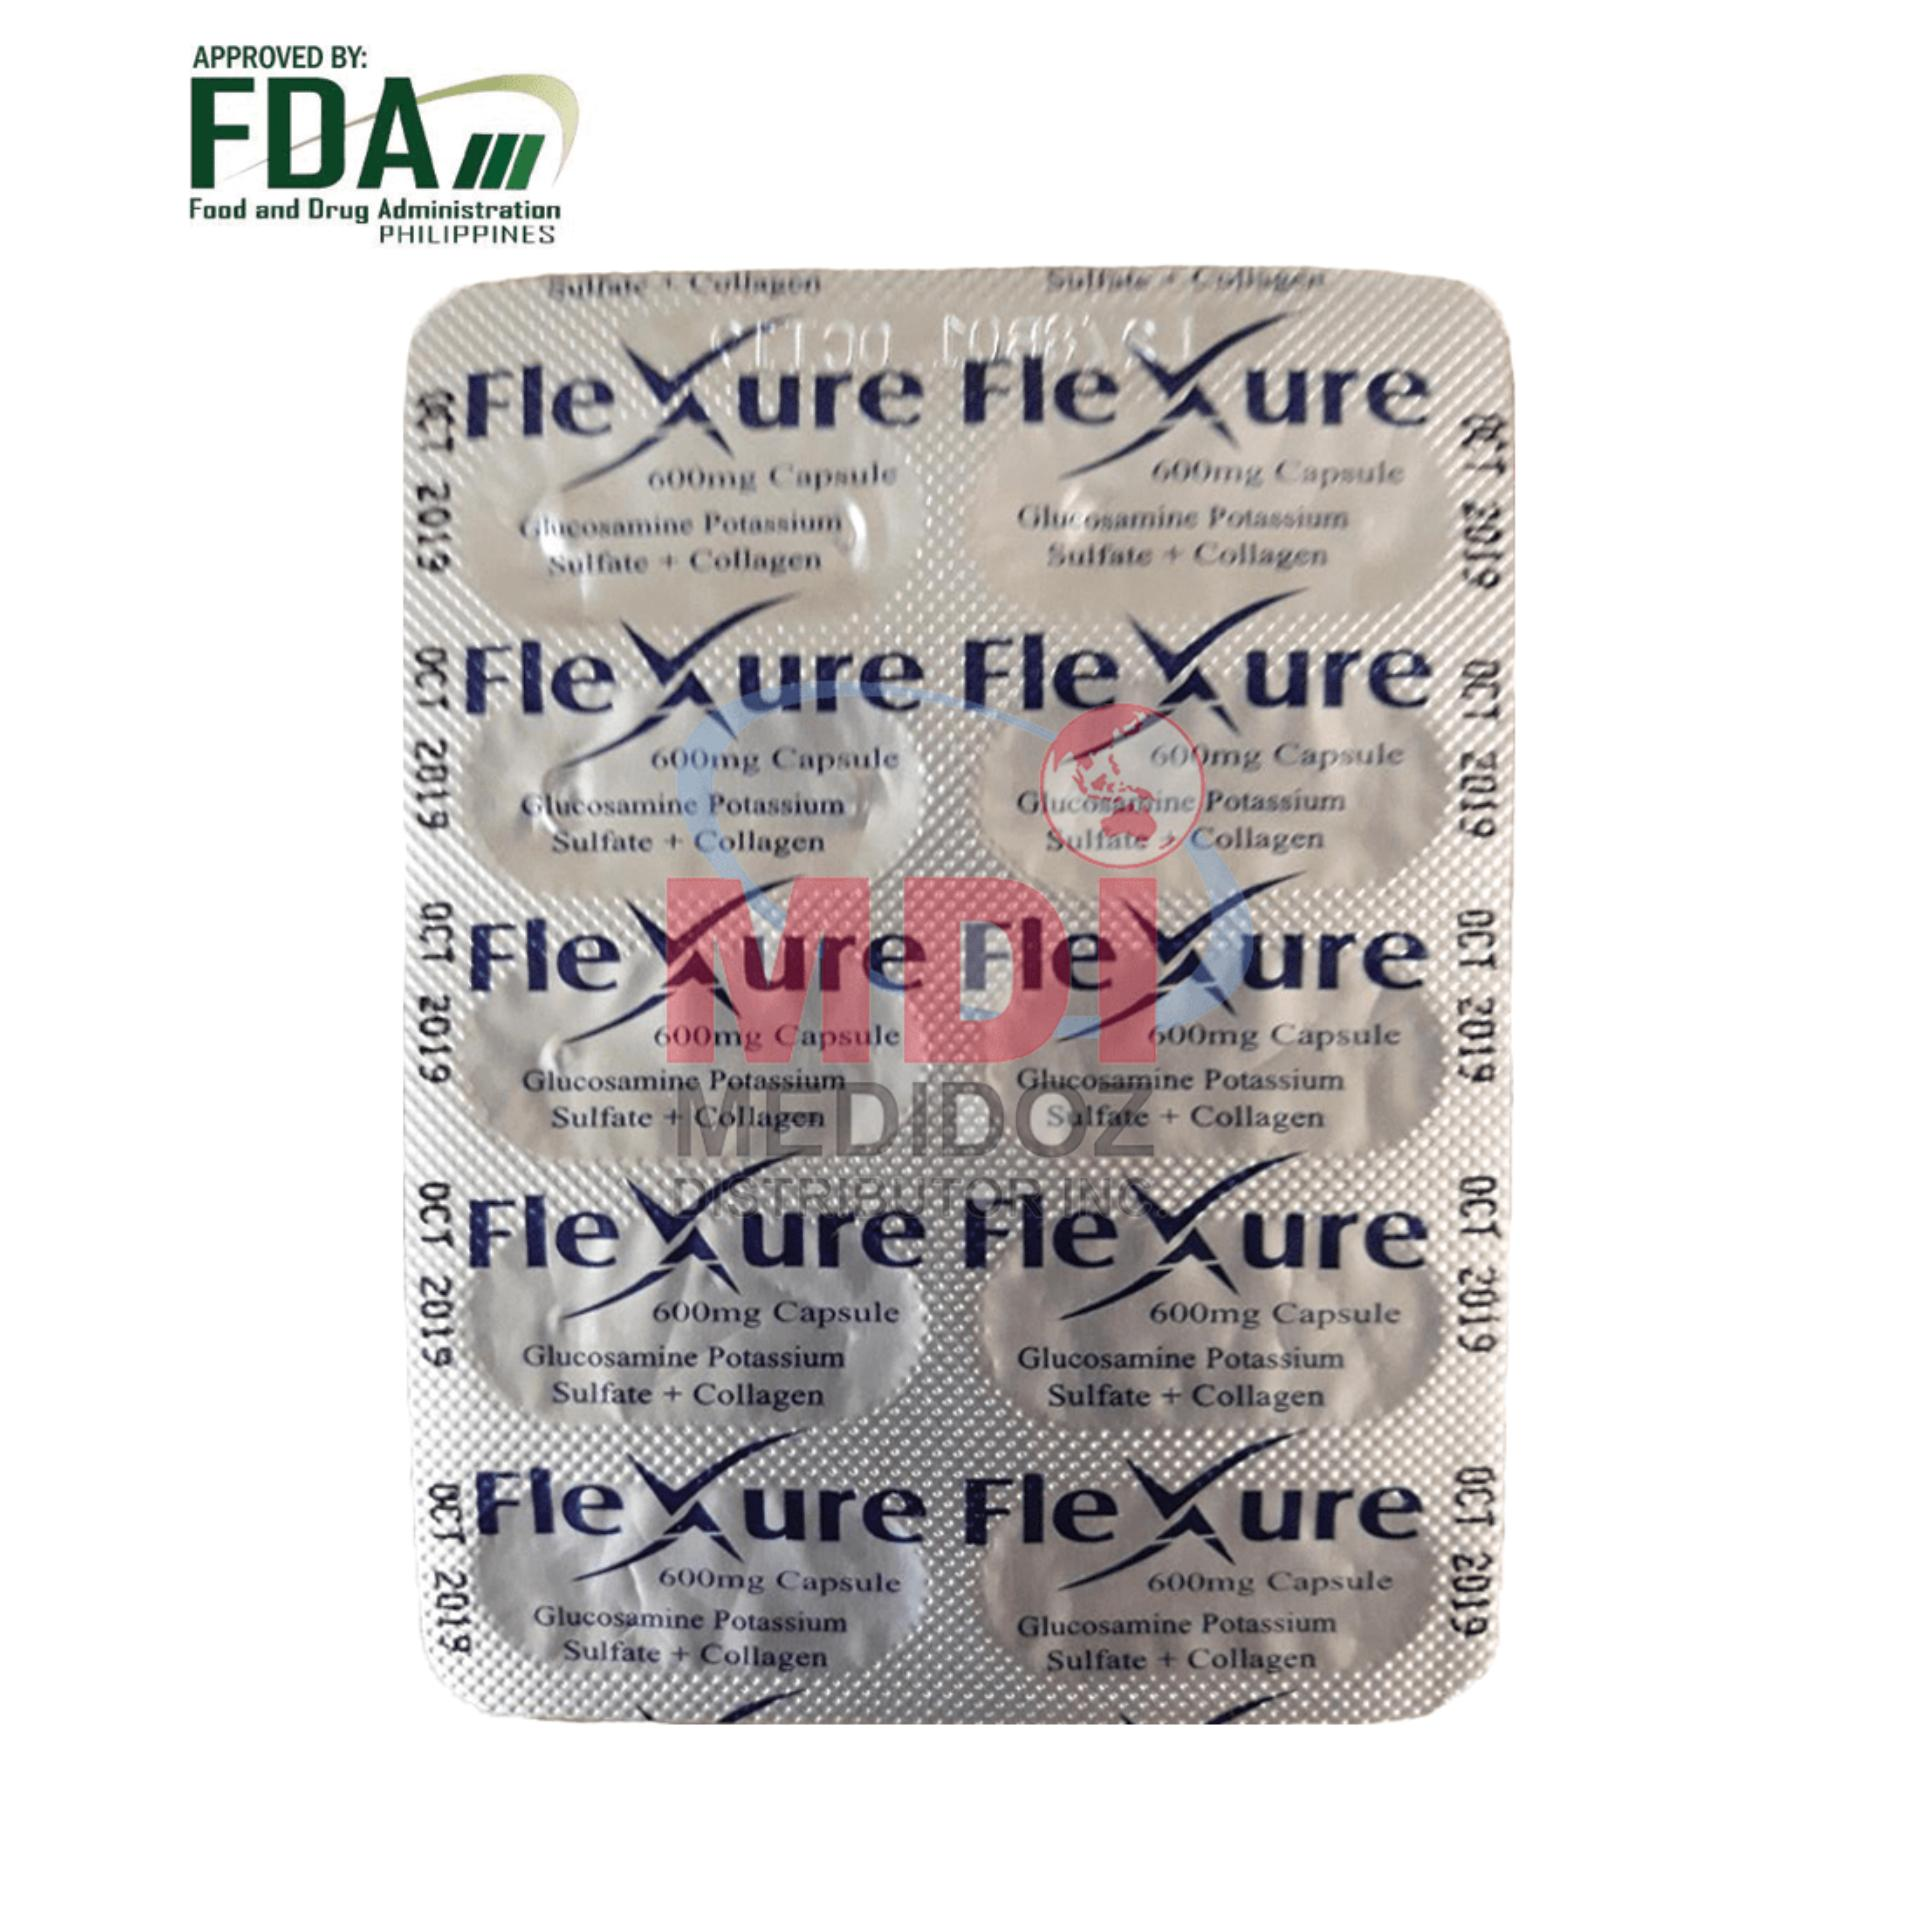 Buy Sell Cheapest Doppelherz Aktiv Glucosamine Best Quality Puritan Pride Triple Strength Joint Soother Chondroitin Msm 90 Caplets Flexure Potassium Sulfate Collagen 600mg 10 Capsules